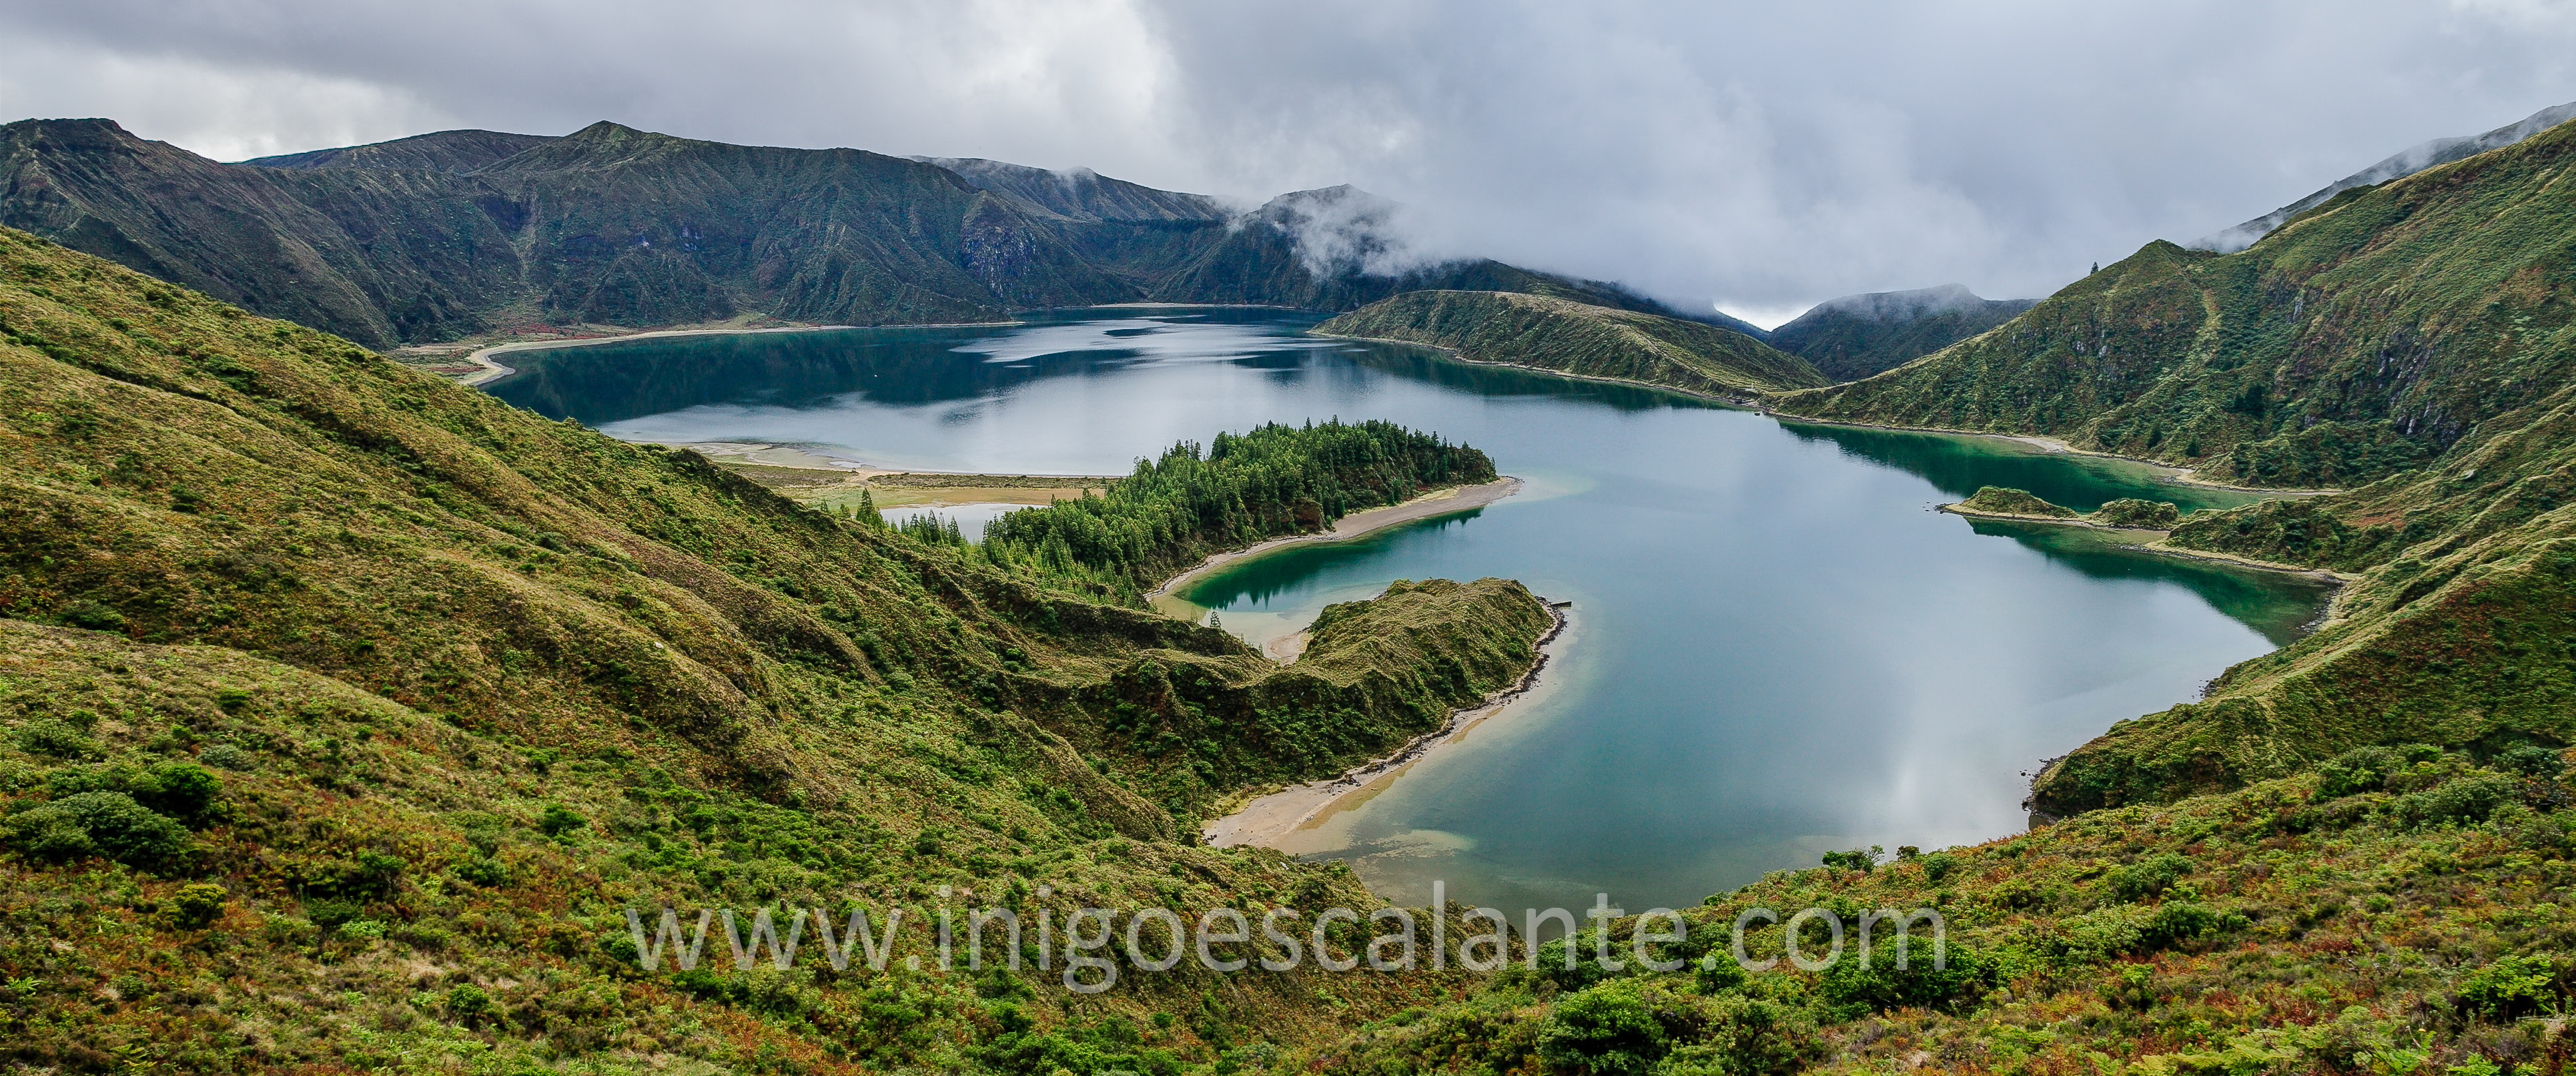 http://byesca.blogspot.com.es/search/label/Islas%20Azores